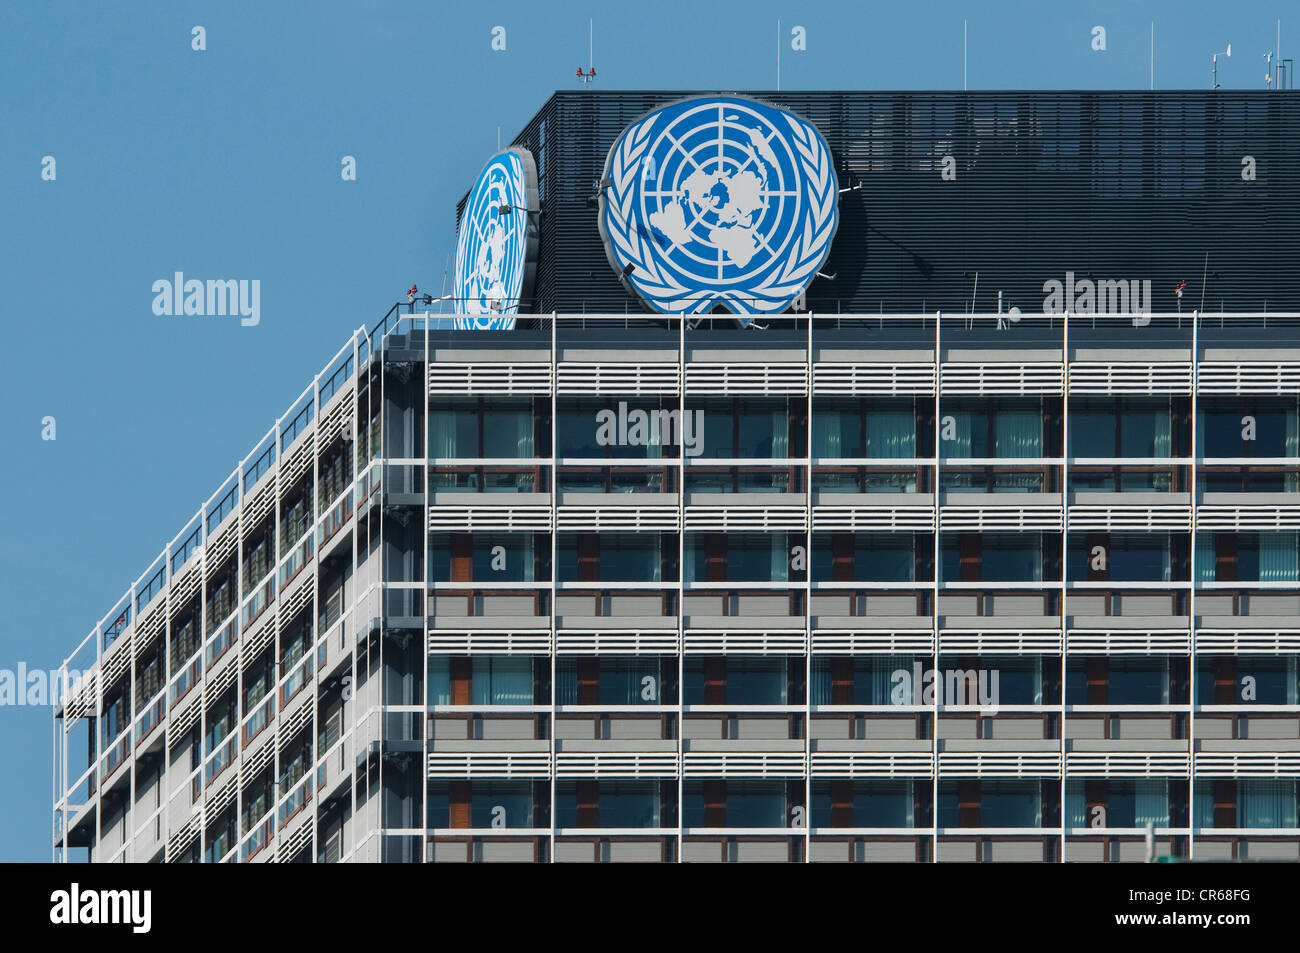 UN building with logo of the United Nations, Langer Eugen, building in the former government district of Bonn - Stock Image